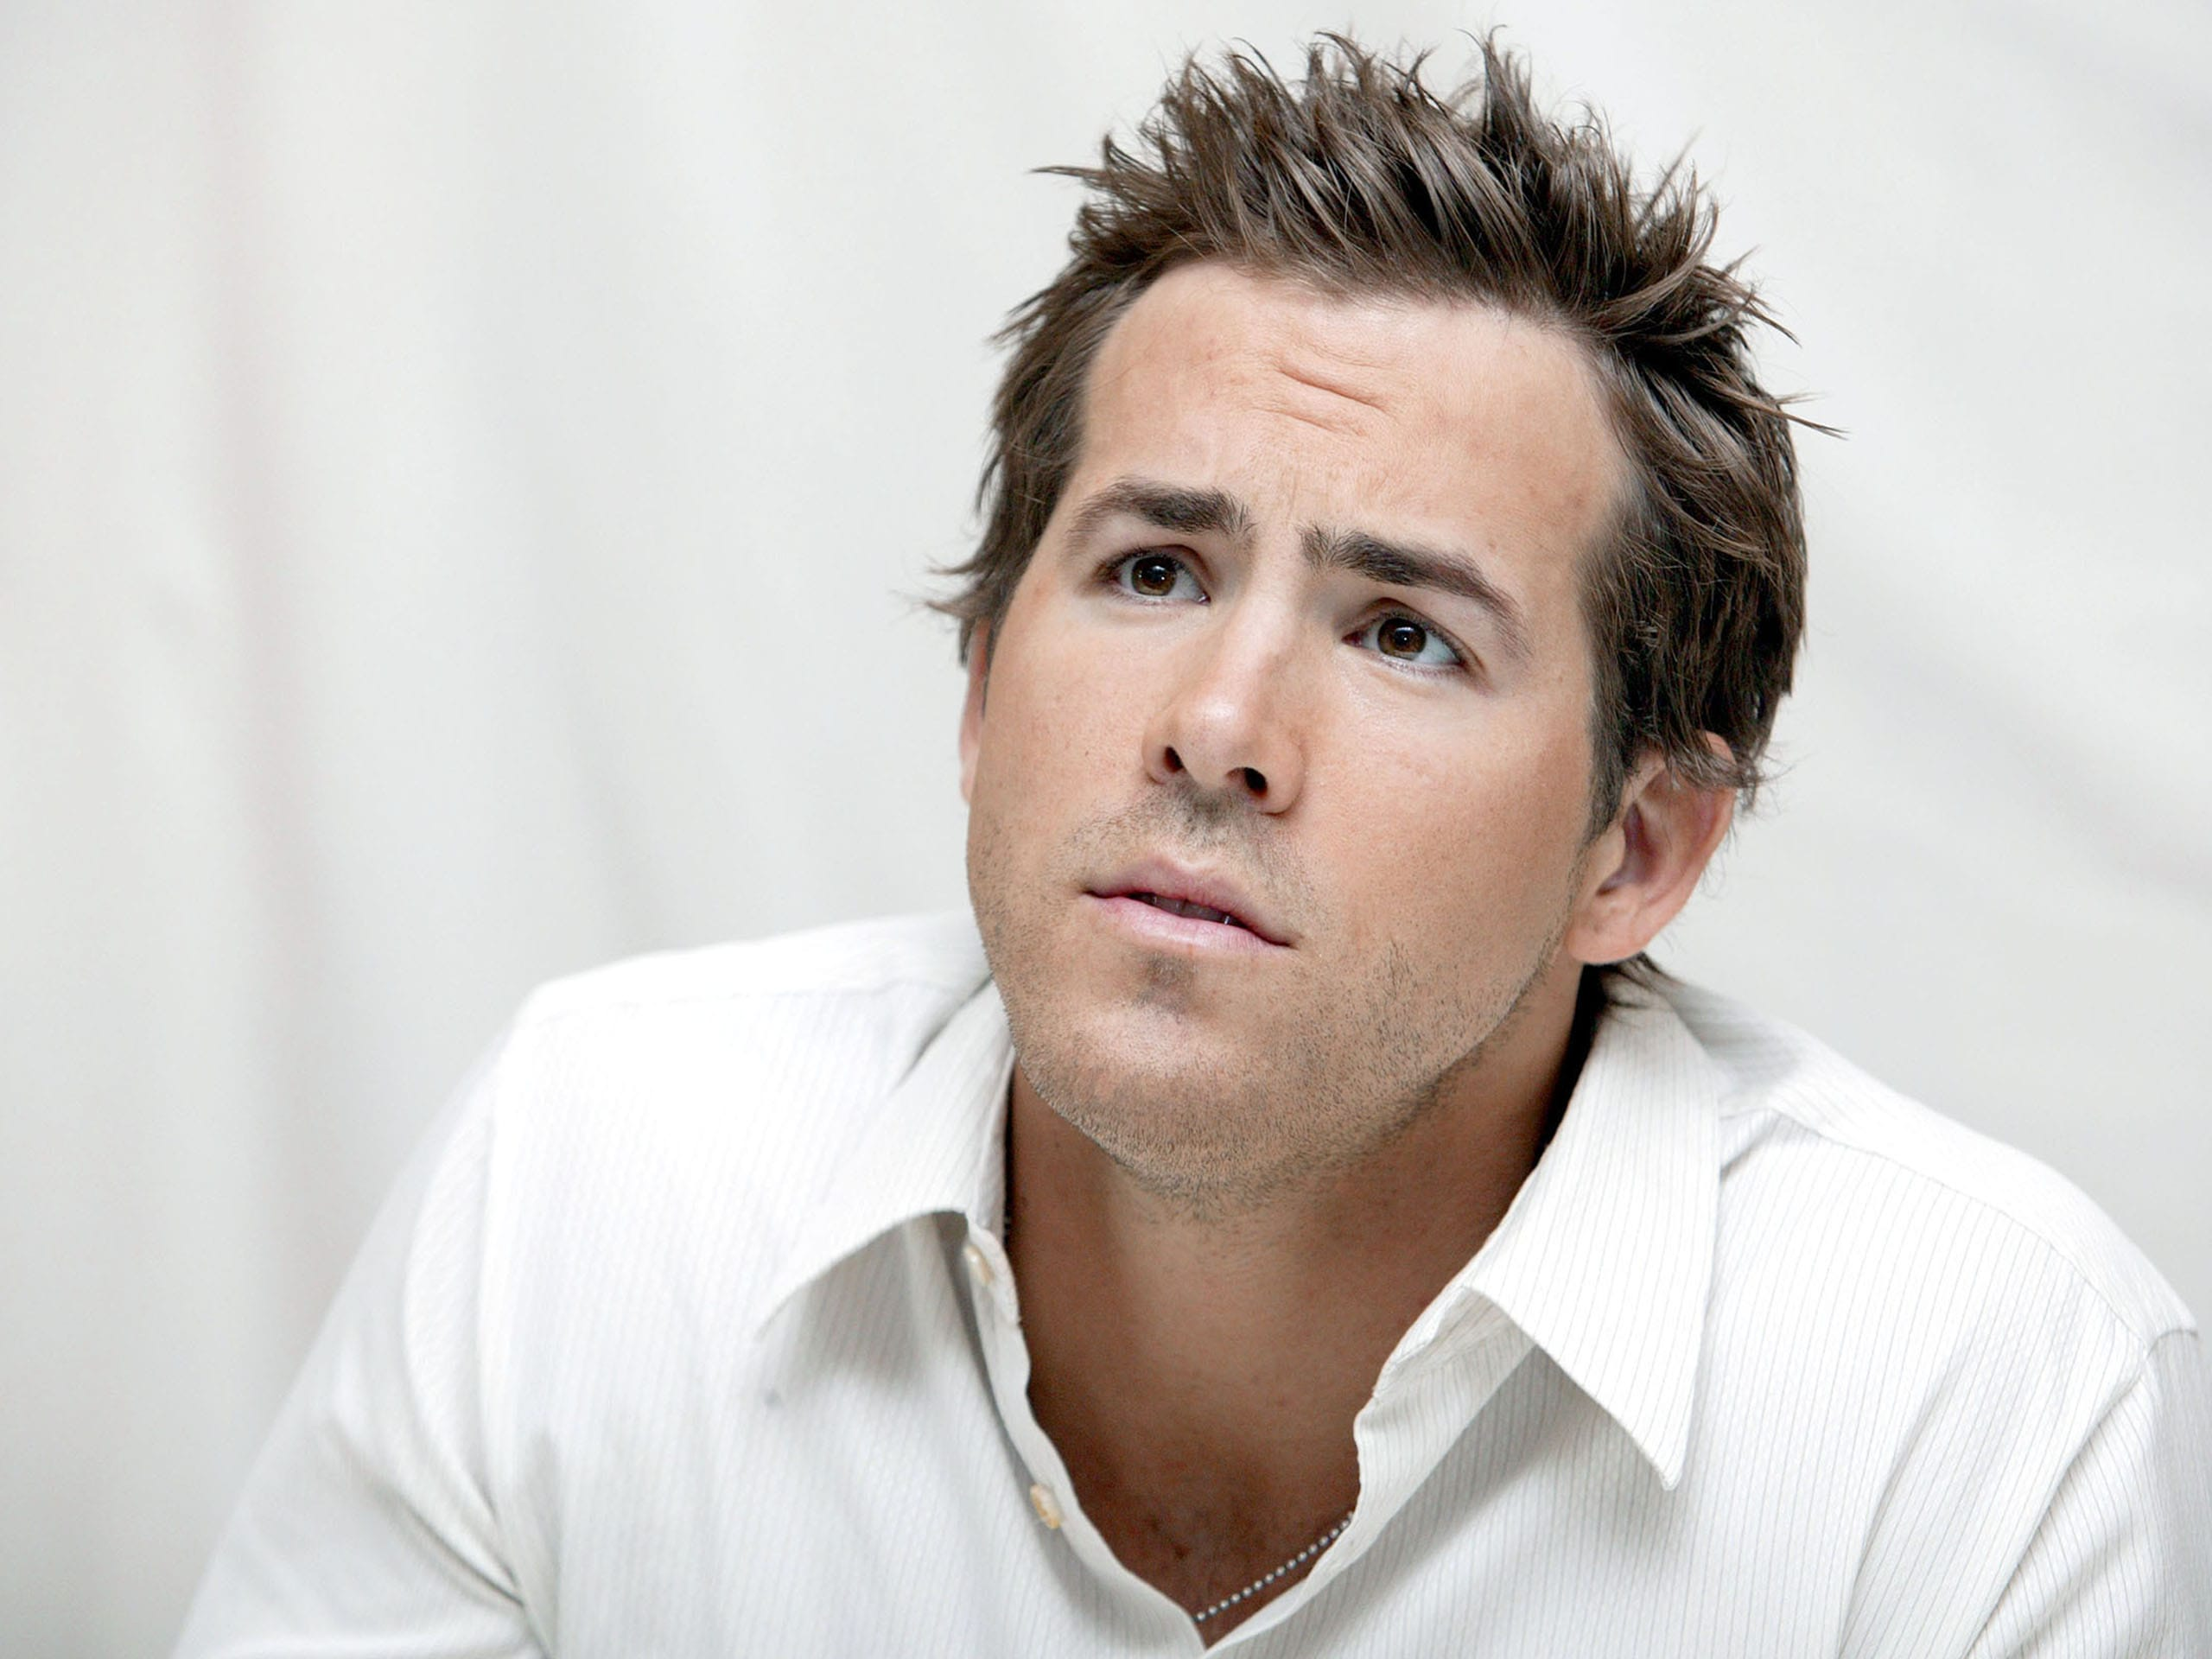 Ryan Reynolds Widescreen